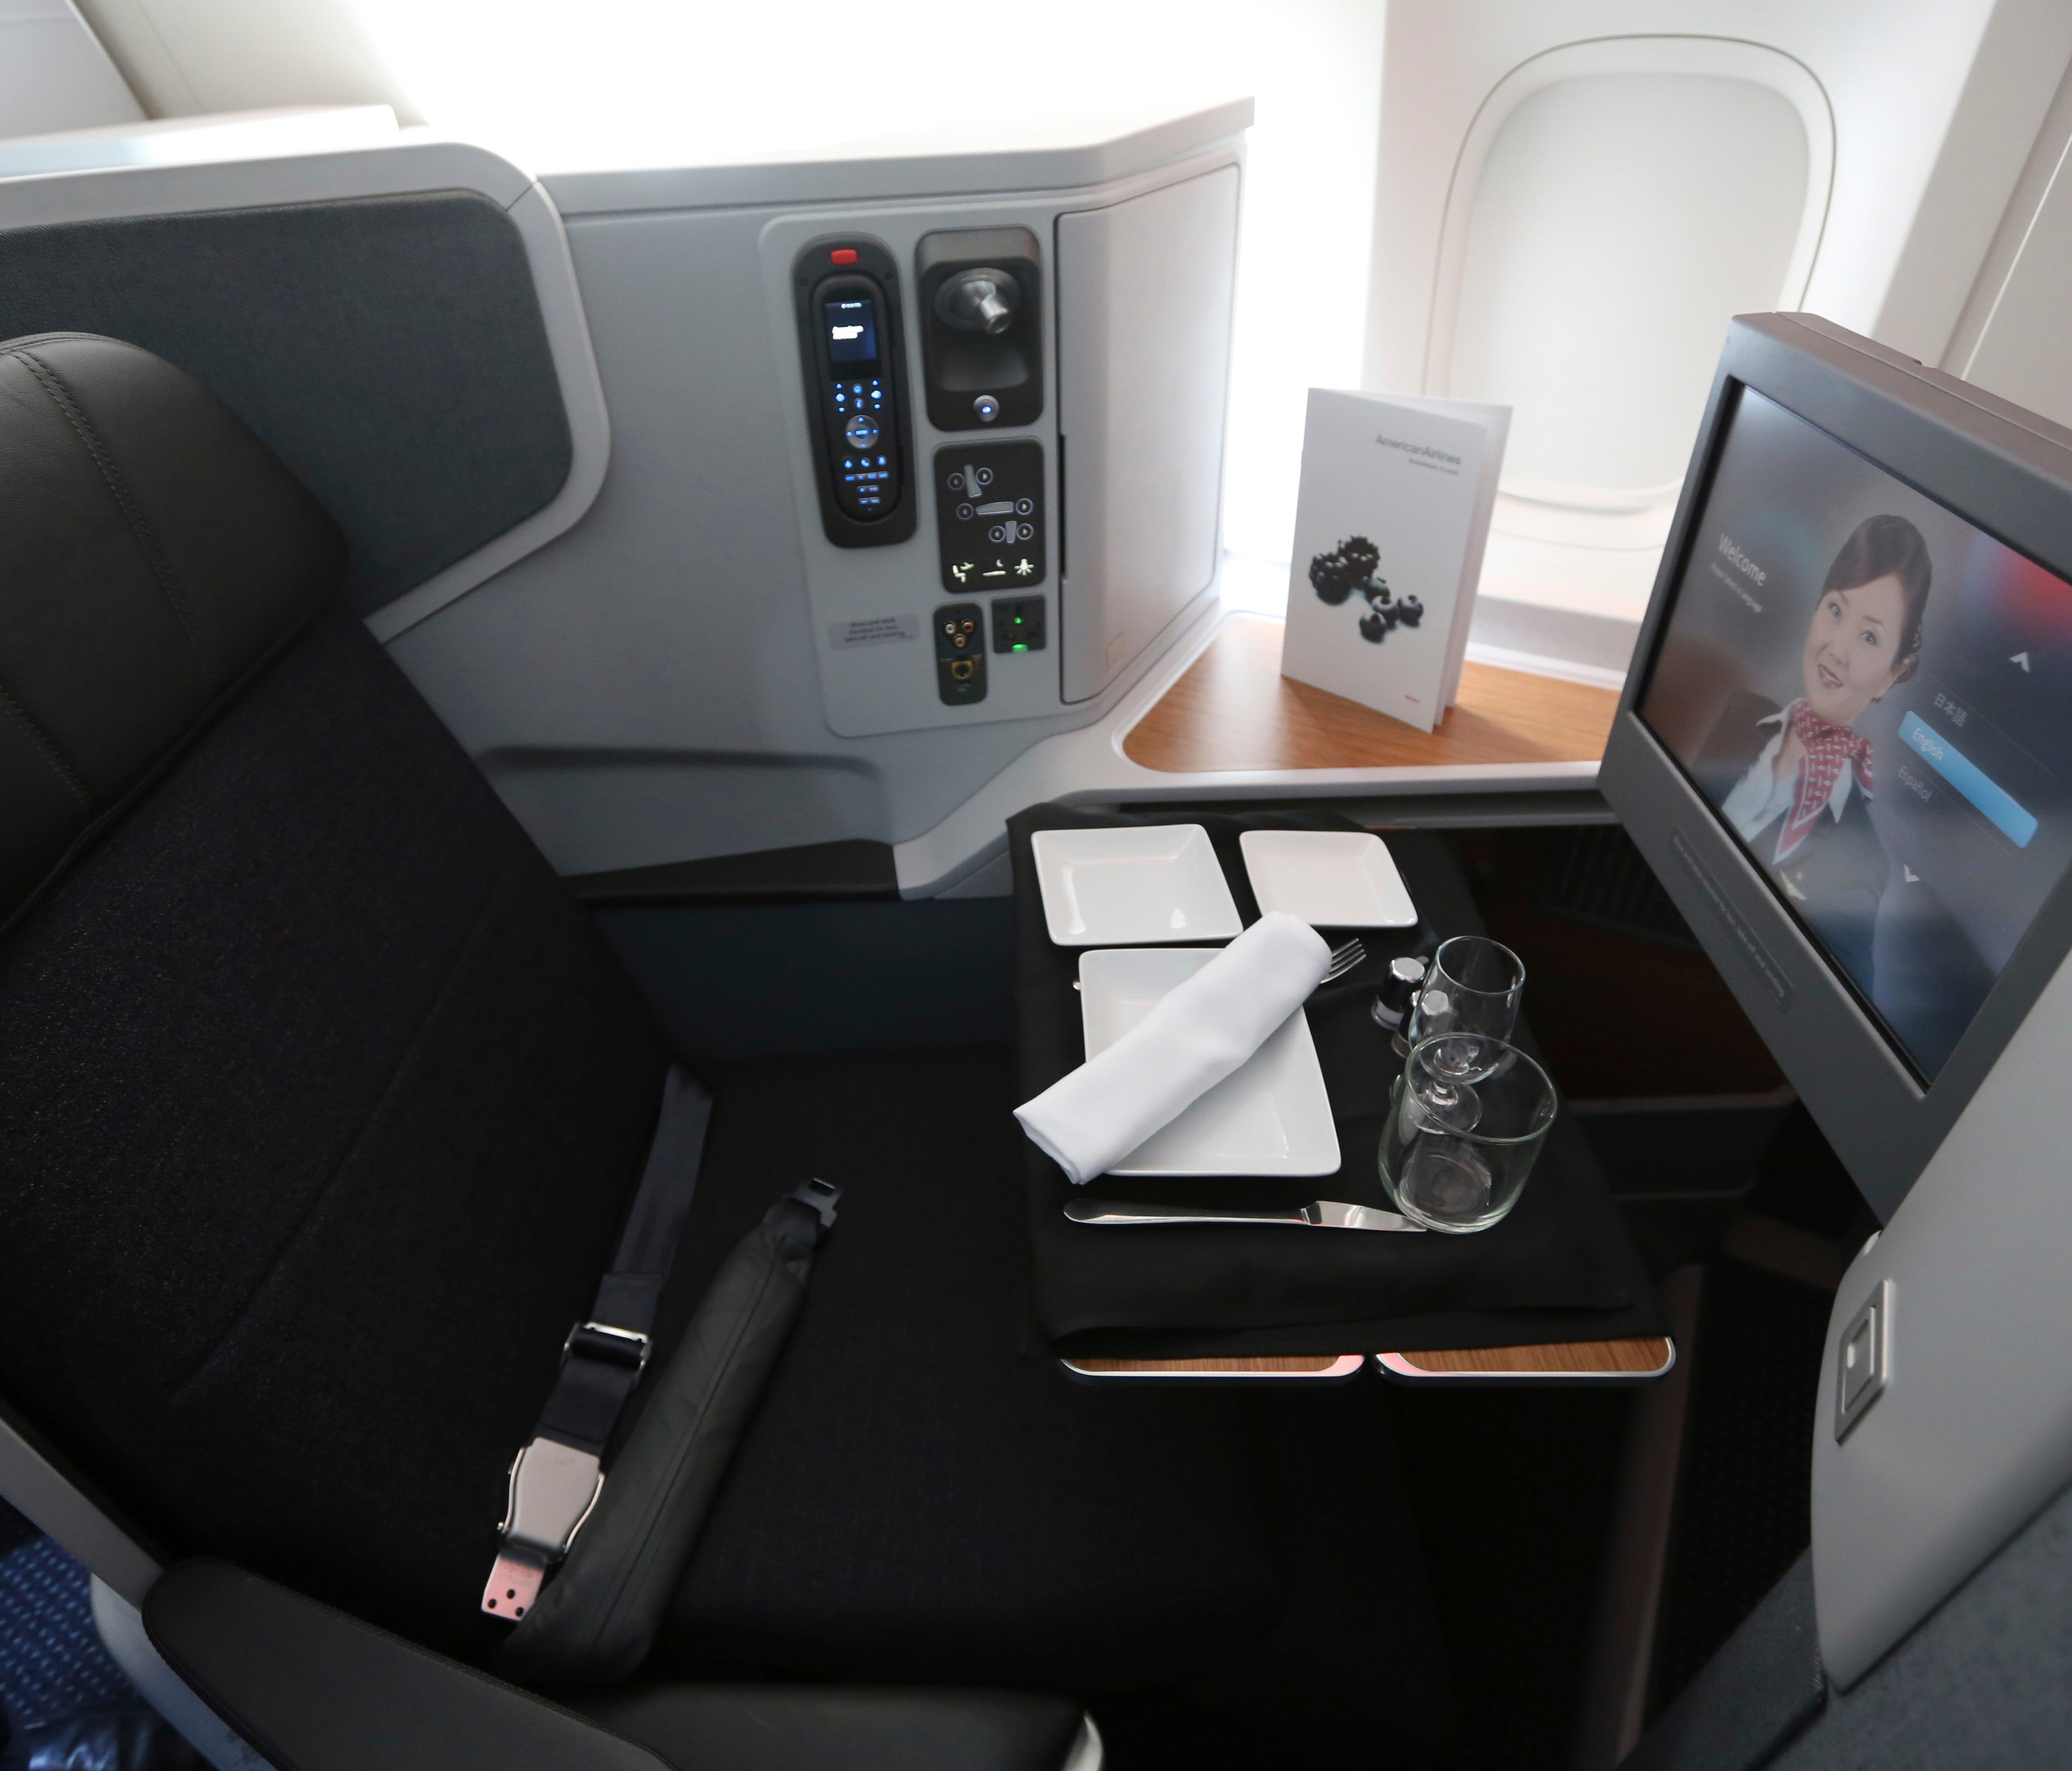 A first-class seat set up for a passenger's meal in American Airlines' Boeing 777-300ER airplane.